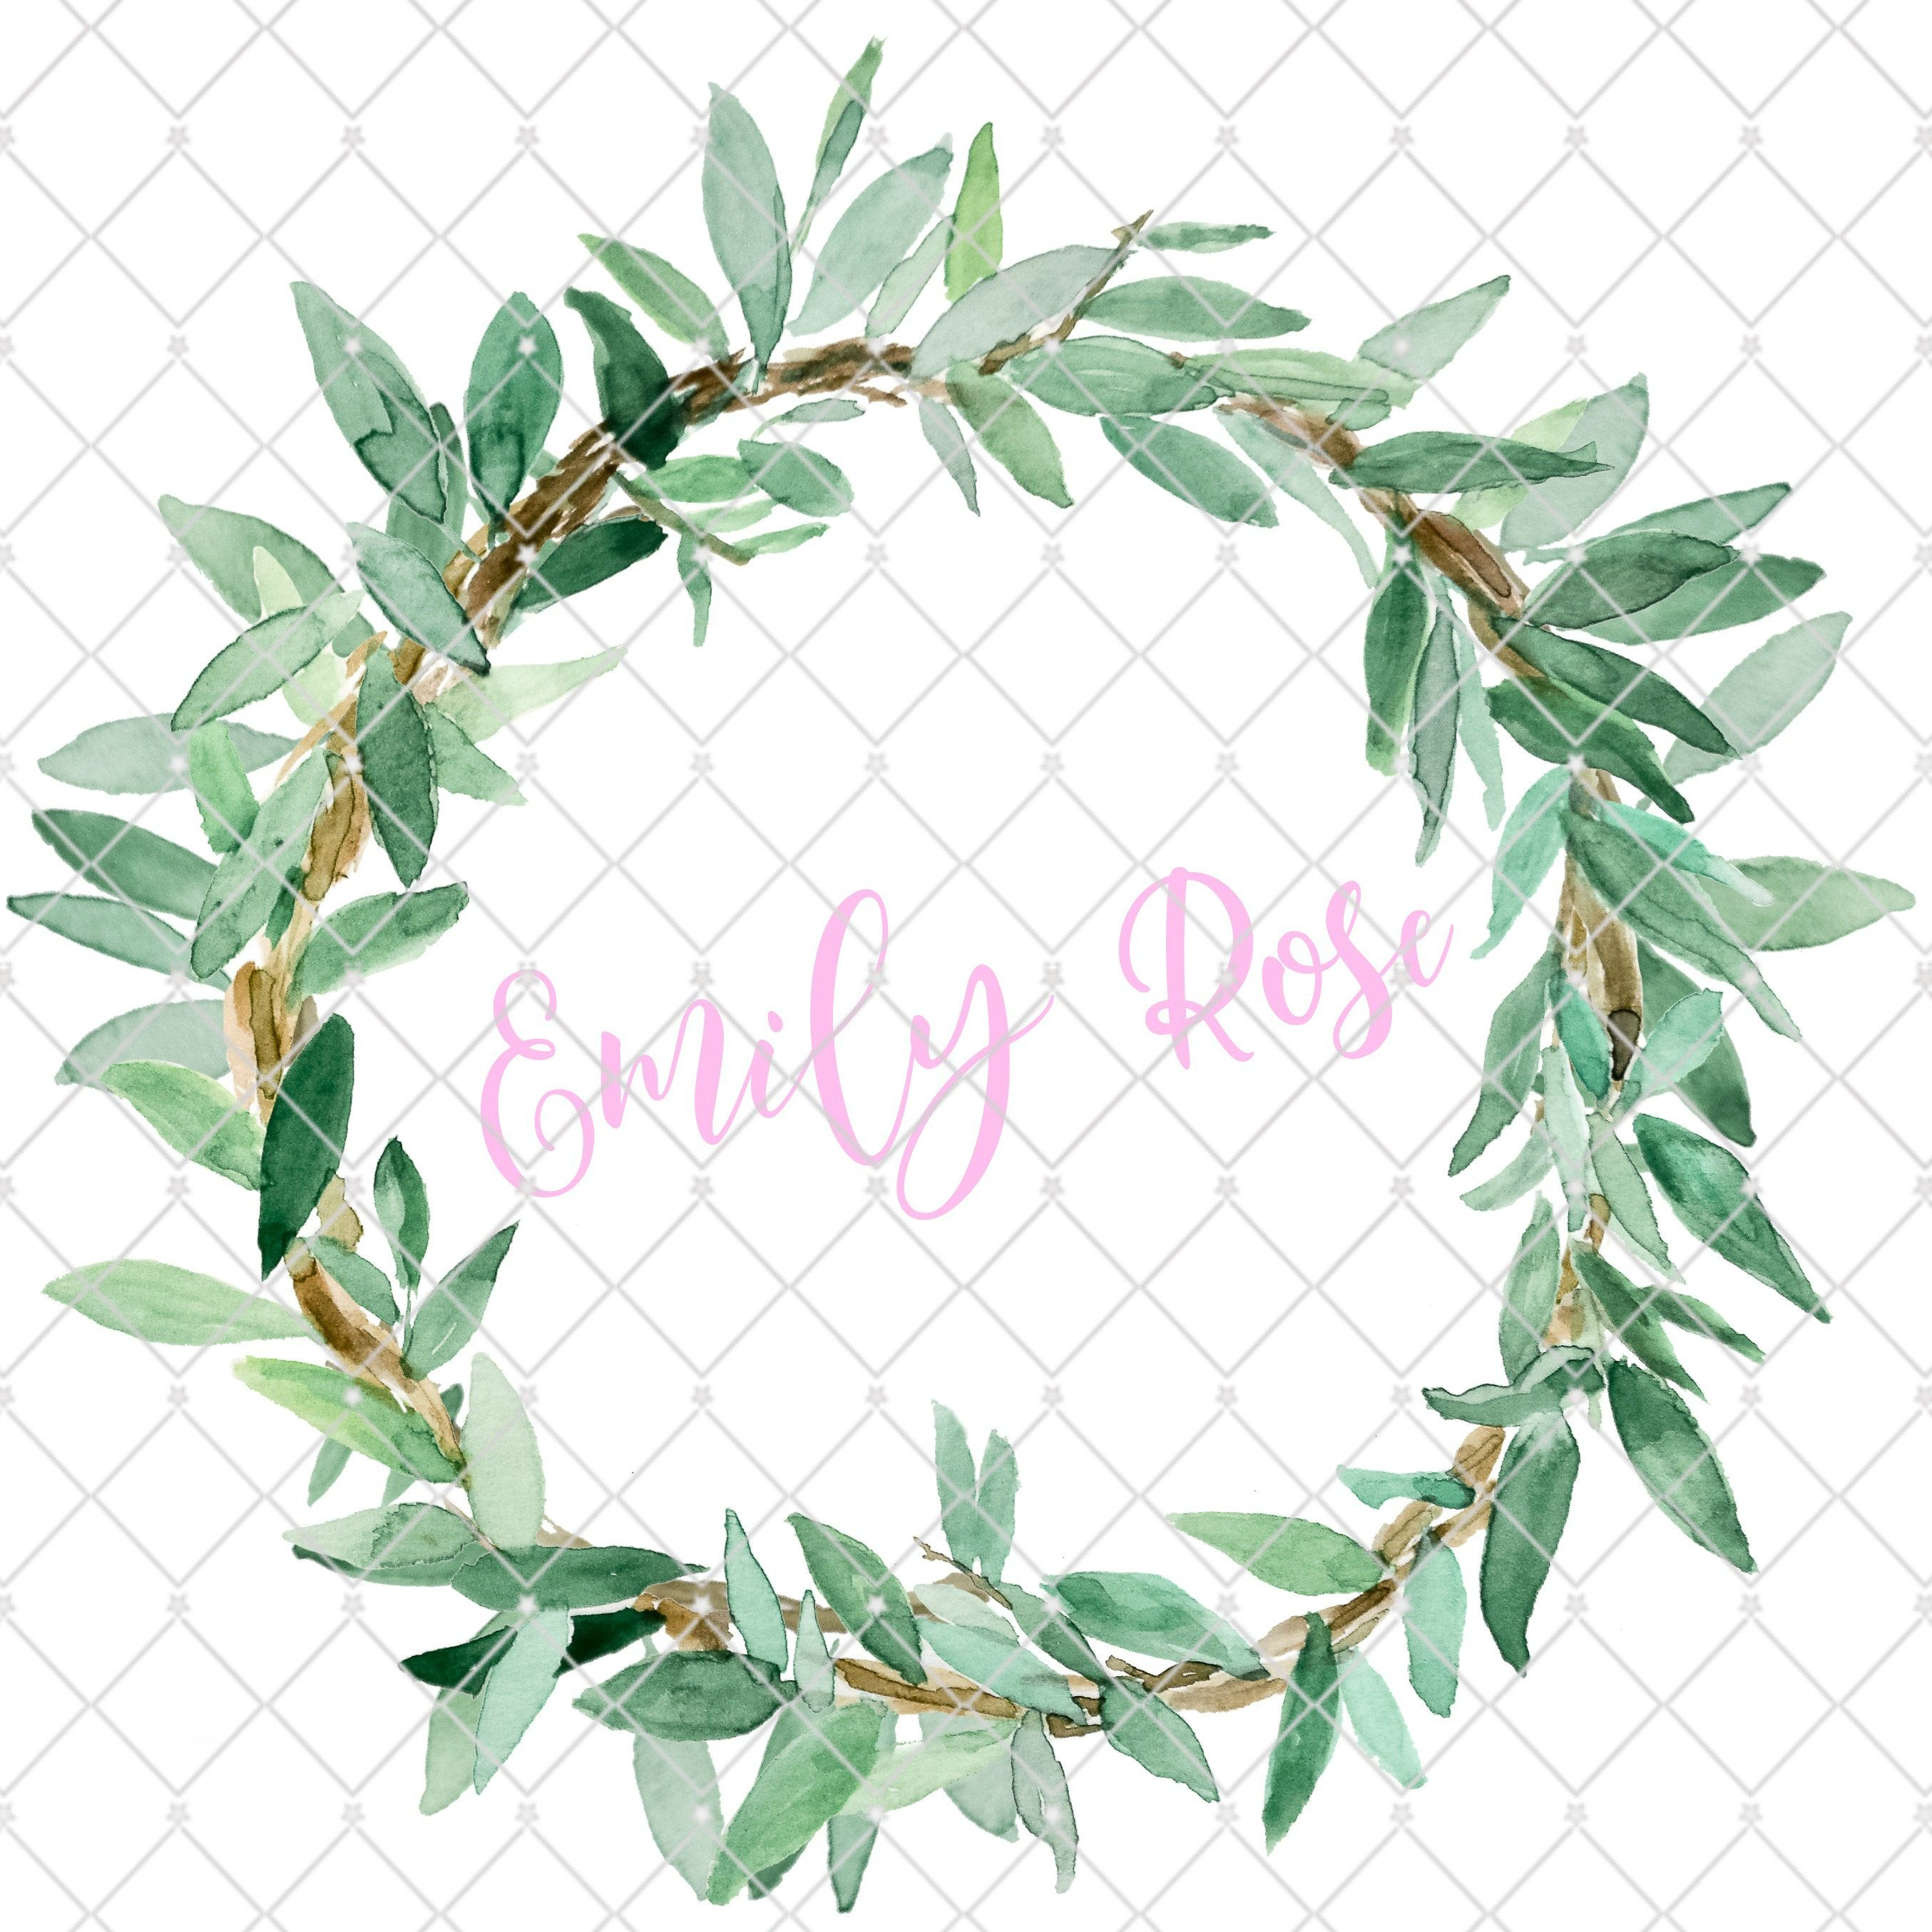 Personalized Name Art Farmhouse Wreath Print Custom Name Print Kids Room Decor Nursery Decor Olive Wreat Farmhouse Wreath Olive Wreath Olive Branch Wreath